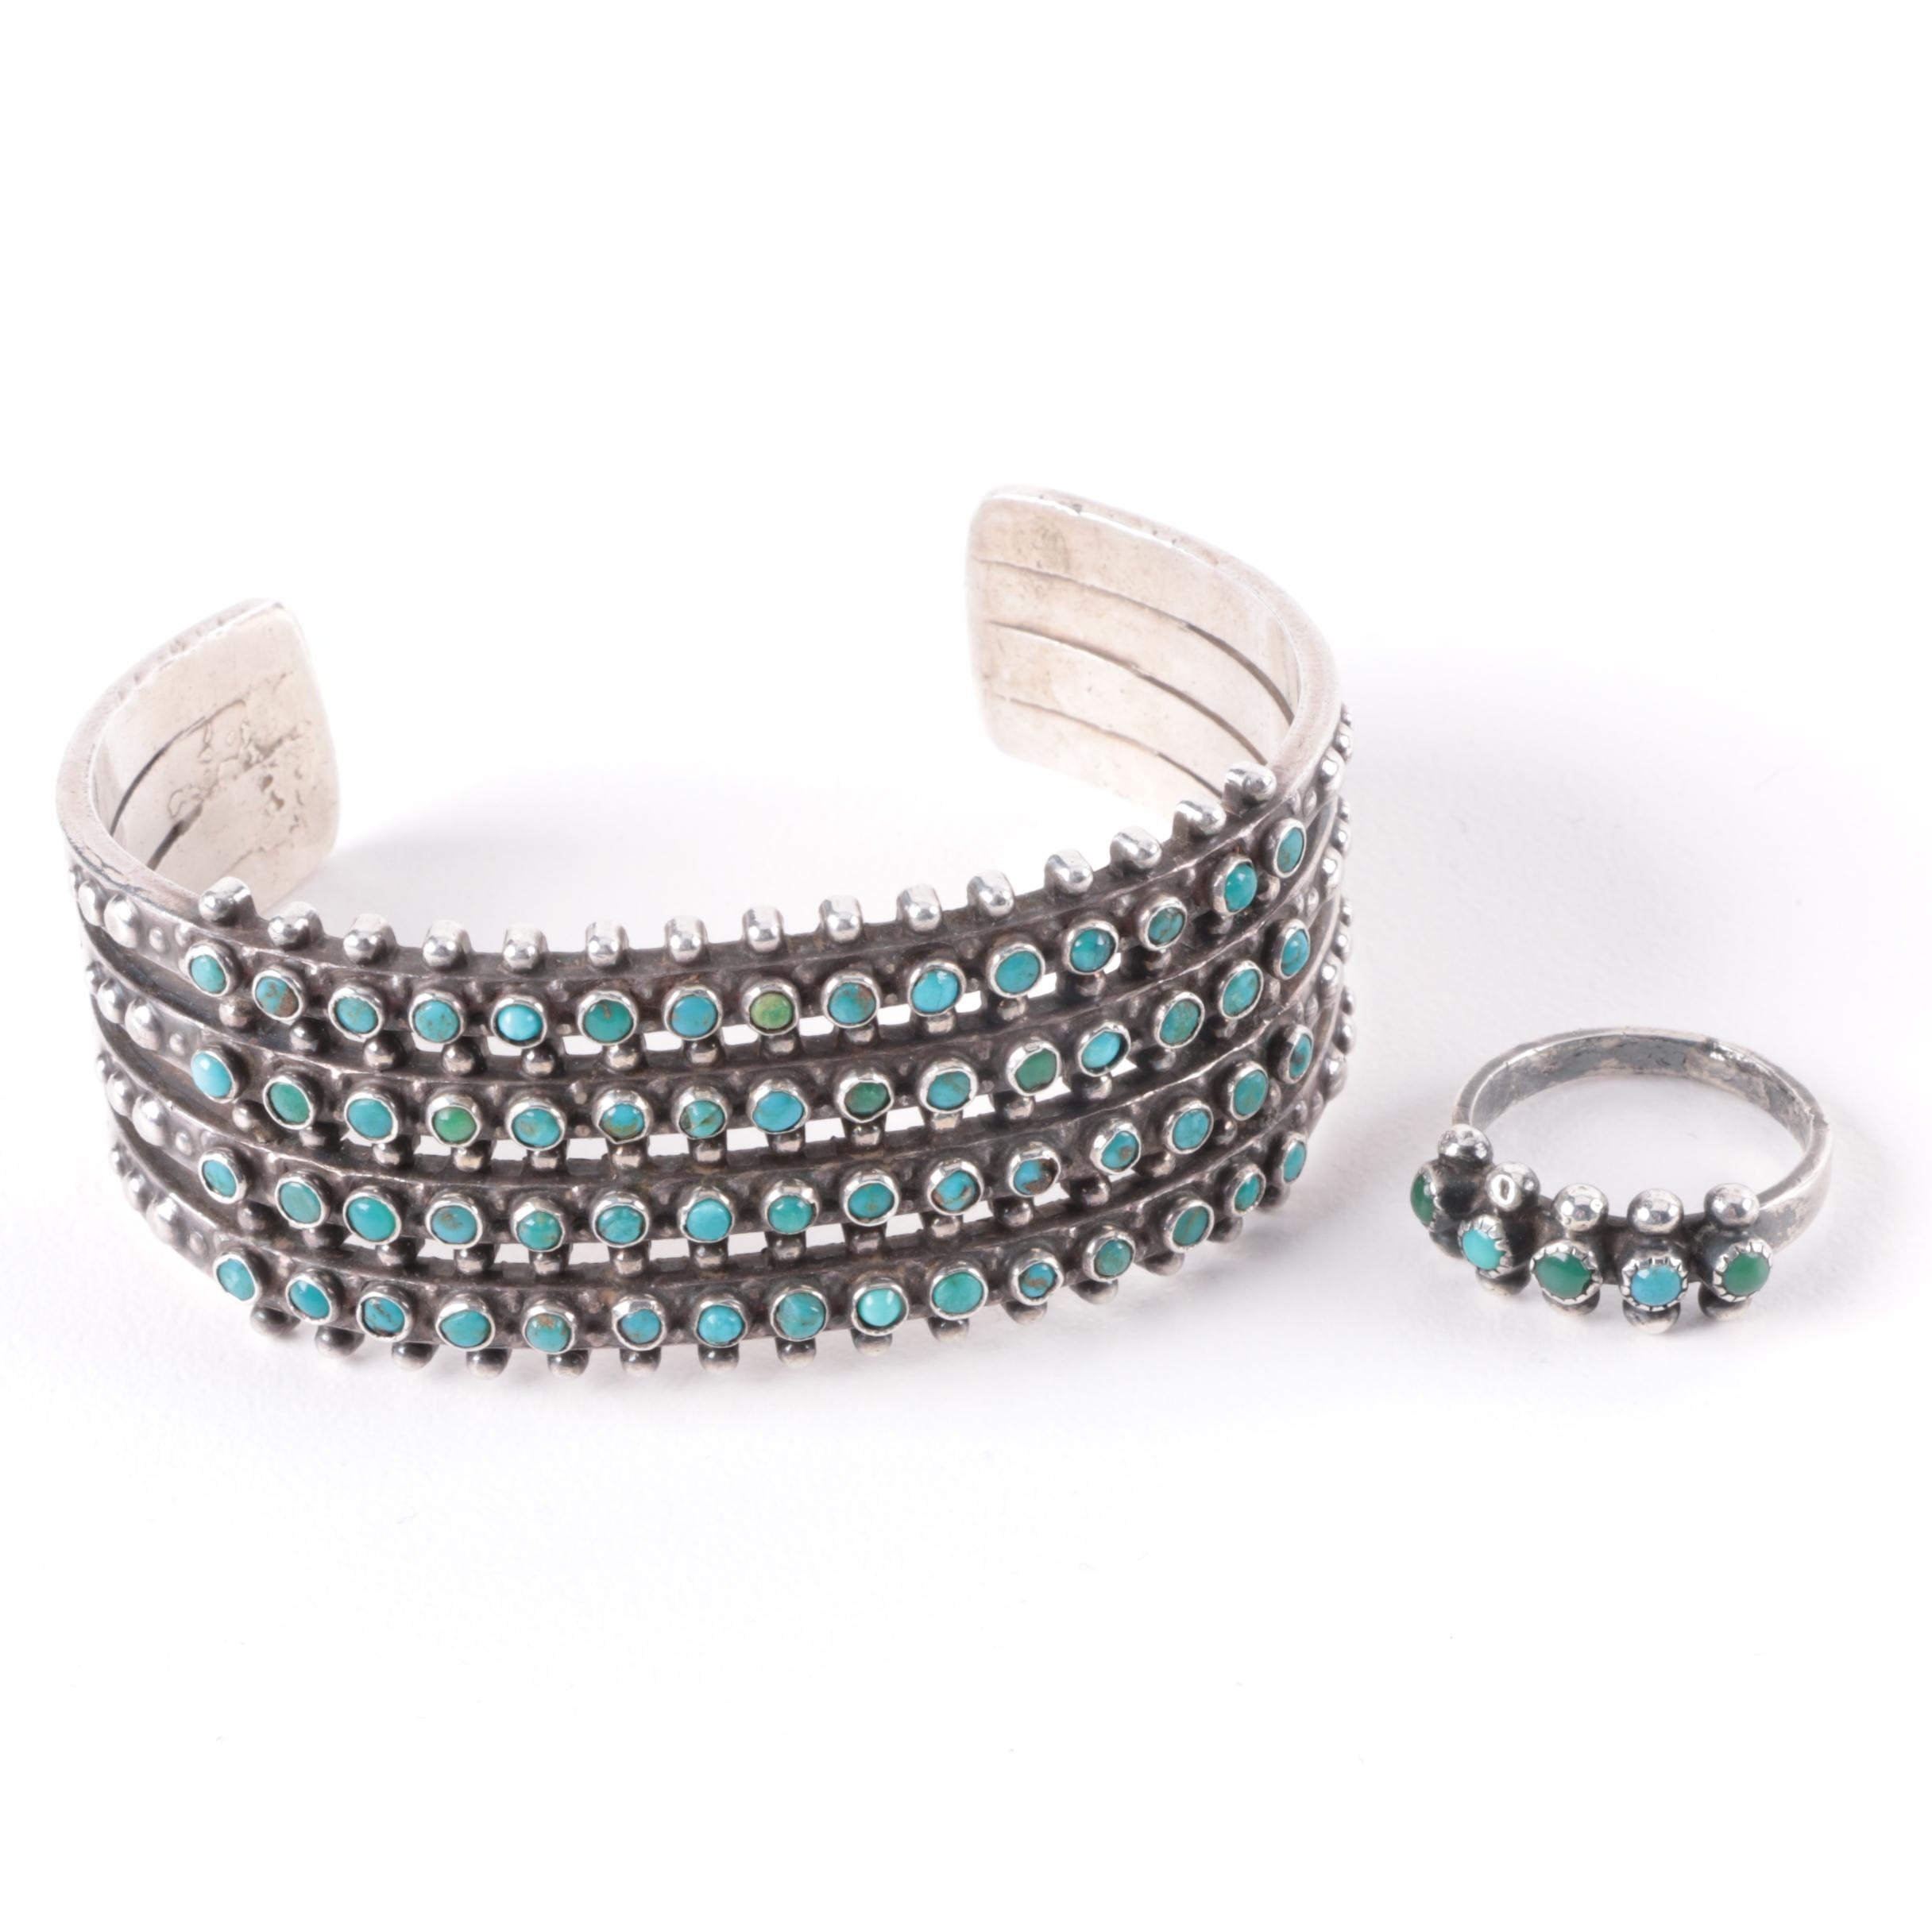 Southwest Style Sterling and Turquoise Petit Point Cuff Bracelet and Ring